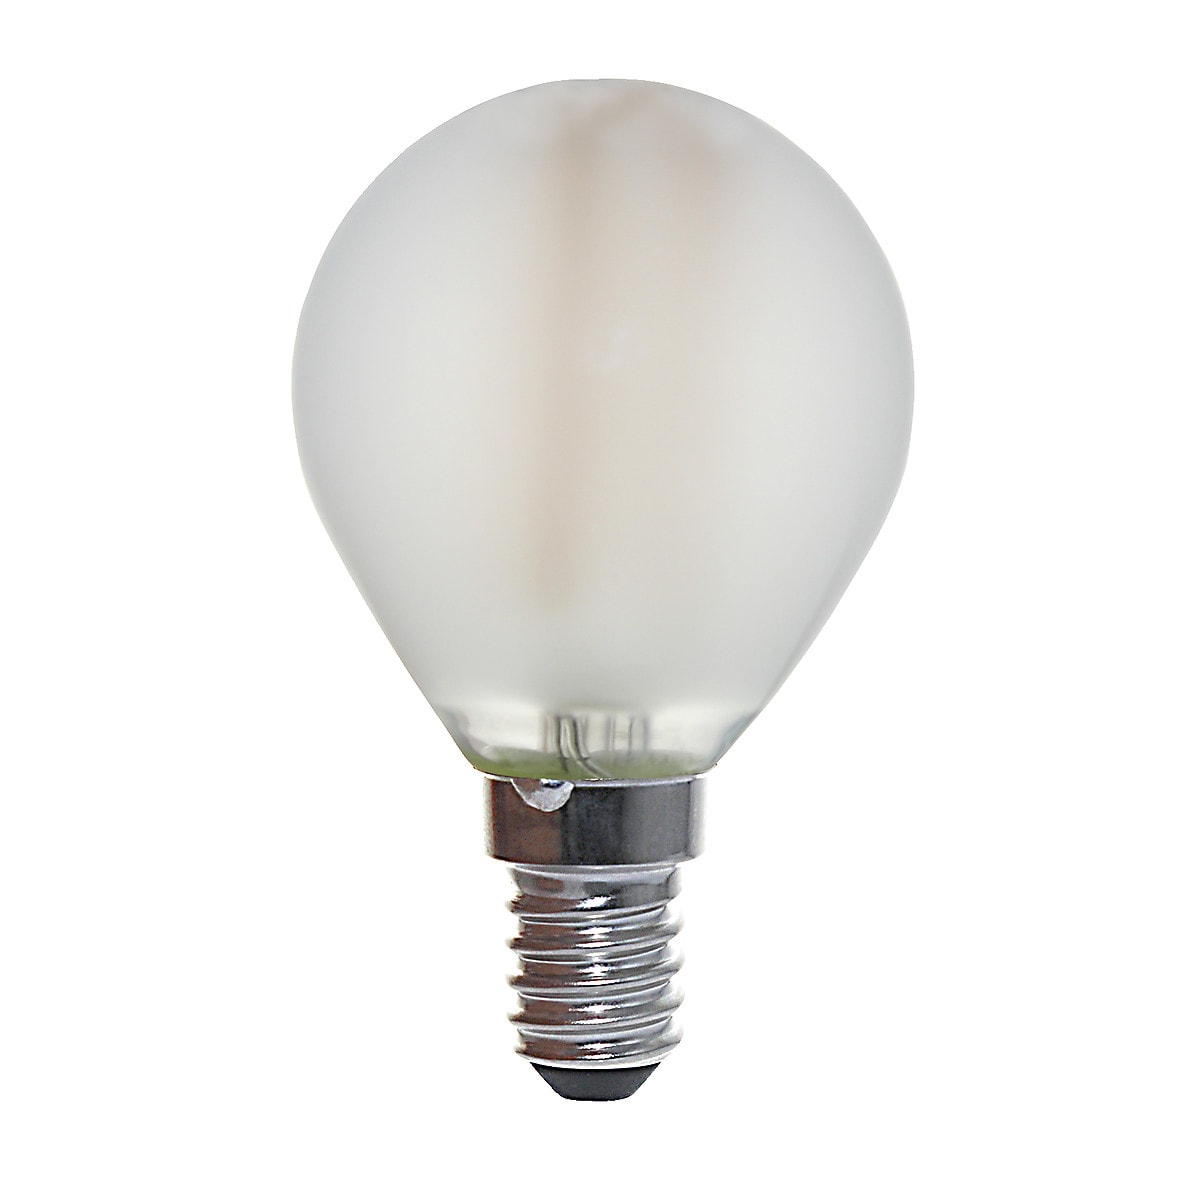 Clas Ohlson E14 Dimmable LED Golf Ball Bulb